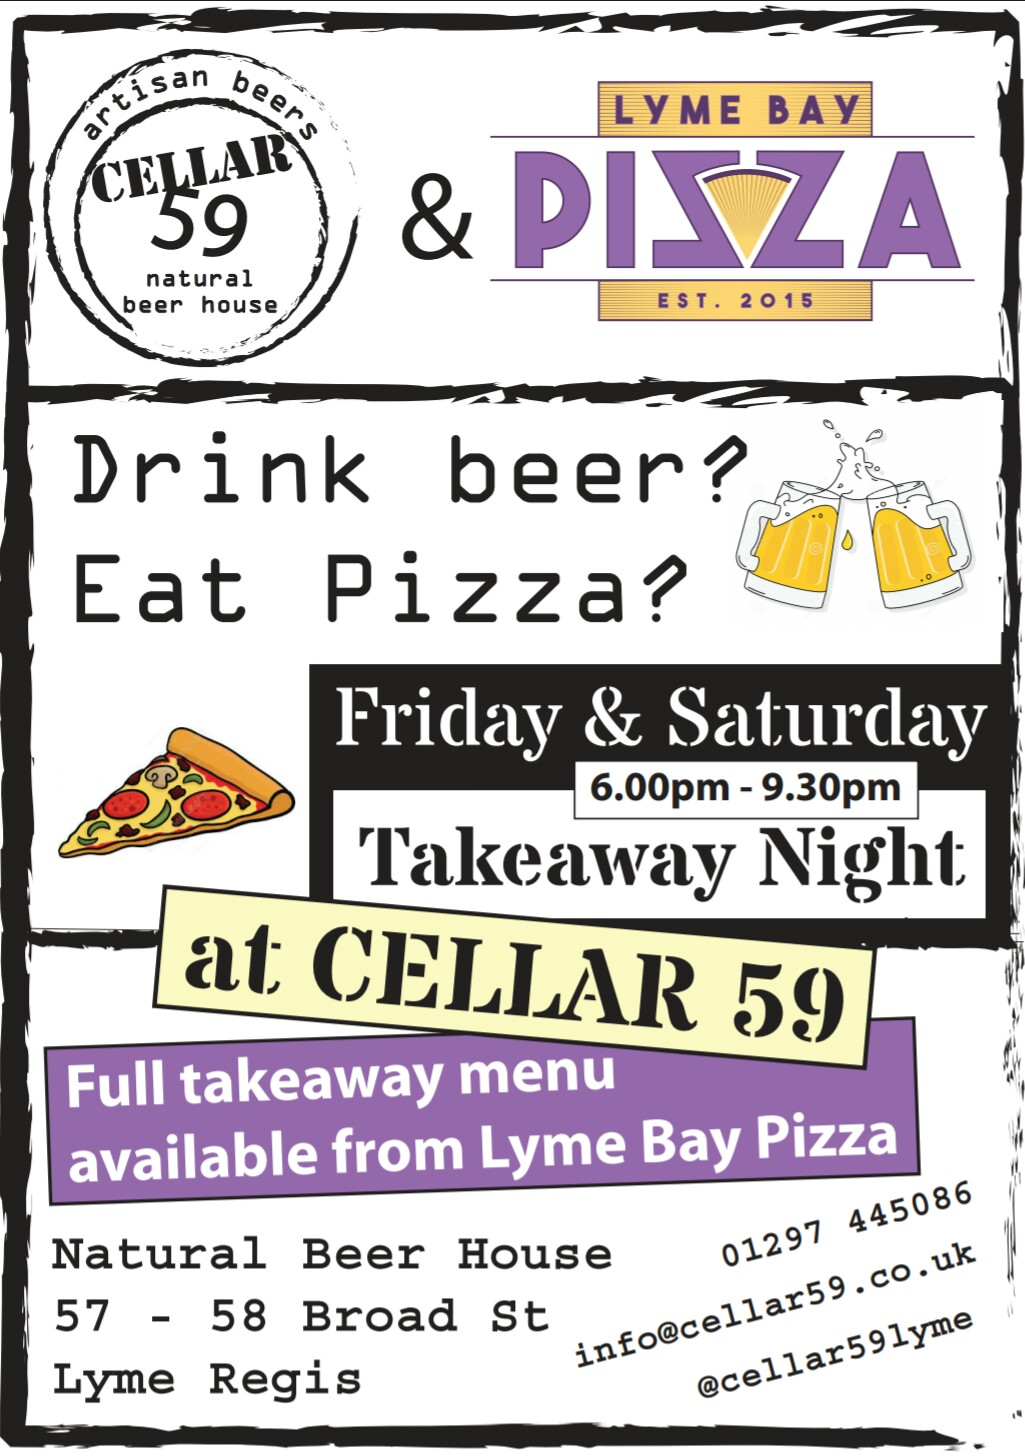 Natural Beer House serve Lyme Bay Pizza's every Friday and Saturday night between 6pm and 9:30pm. Natural Beer House 57-58 Broad St, Lyme Regis.